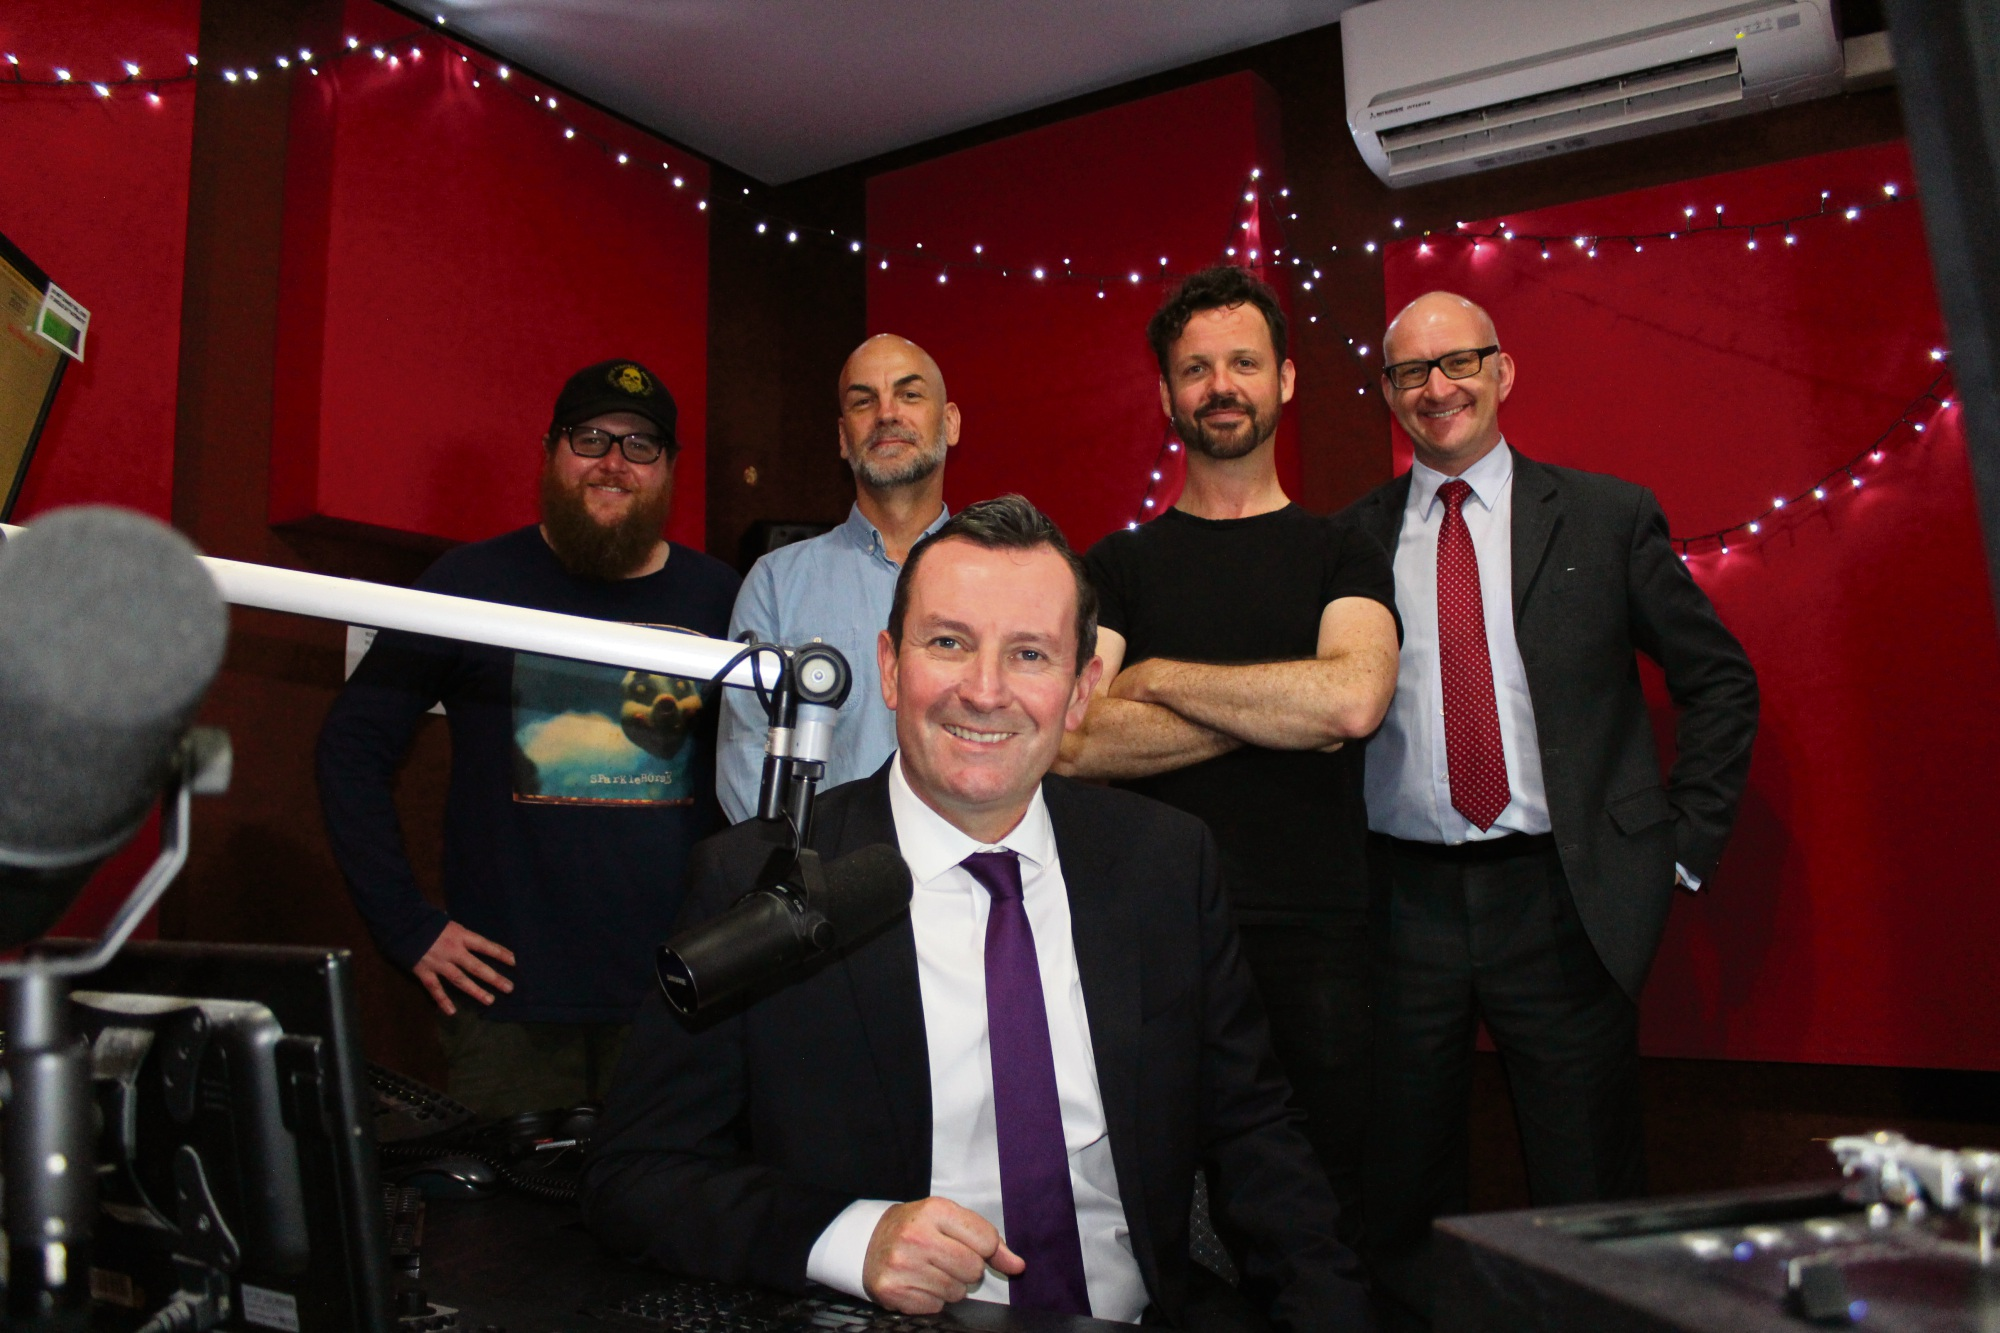 WA Premier Mark Mcgowan (front) with RTRFM board members and presenters James Hall and John Vojkovich, station general manager Stuart MacLeod and Mt Lawley MLA Simon Millman.